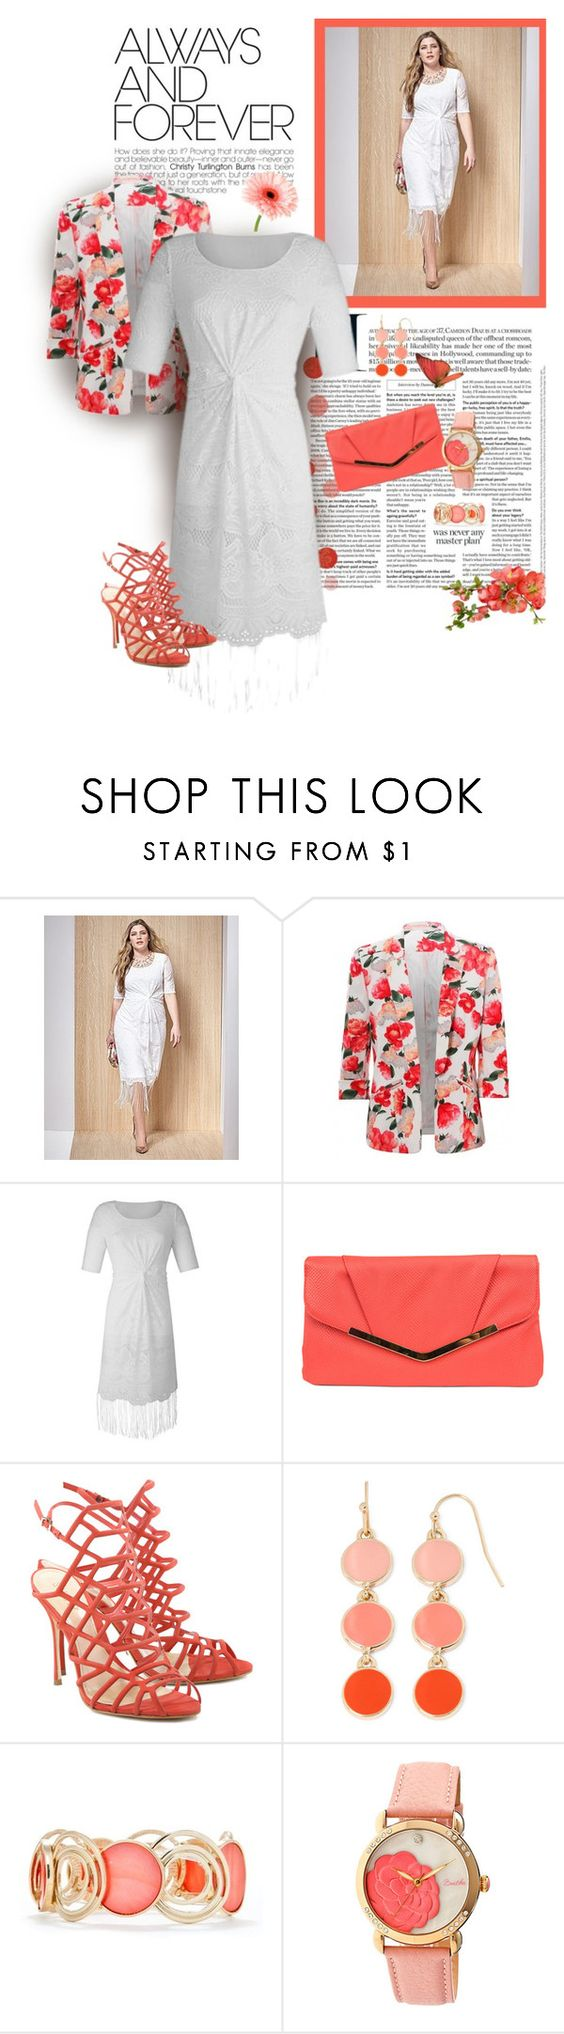 """""""Plus Size Lace & Wrap Dress"""" by feelgood35 ❤ liked on Polyvore featuring Gunne Sax By Jessica McClintock, Schutz, Liz Claiborne and New Directions"""